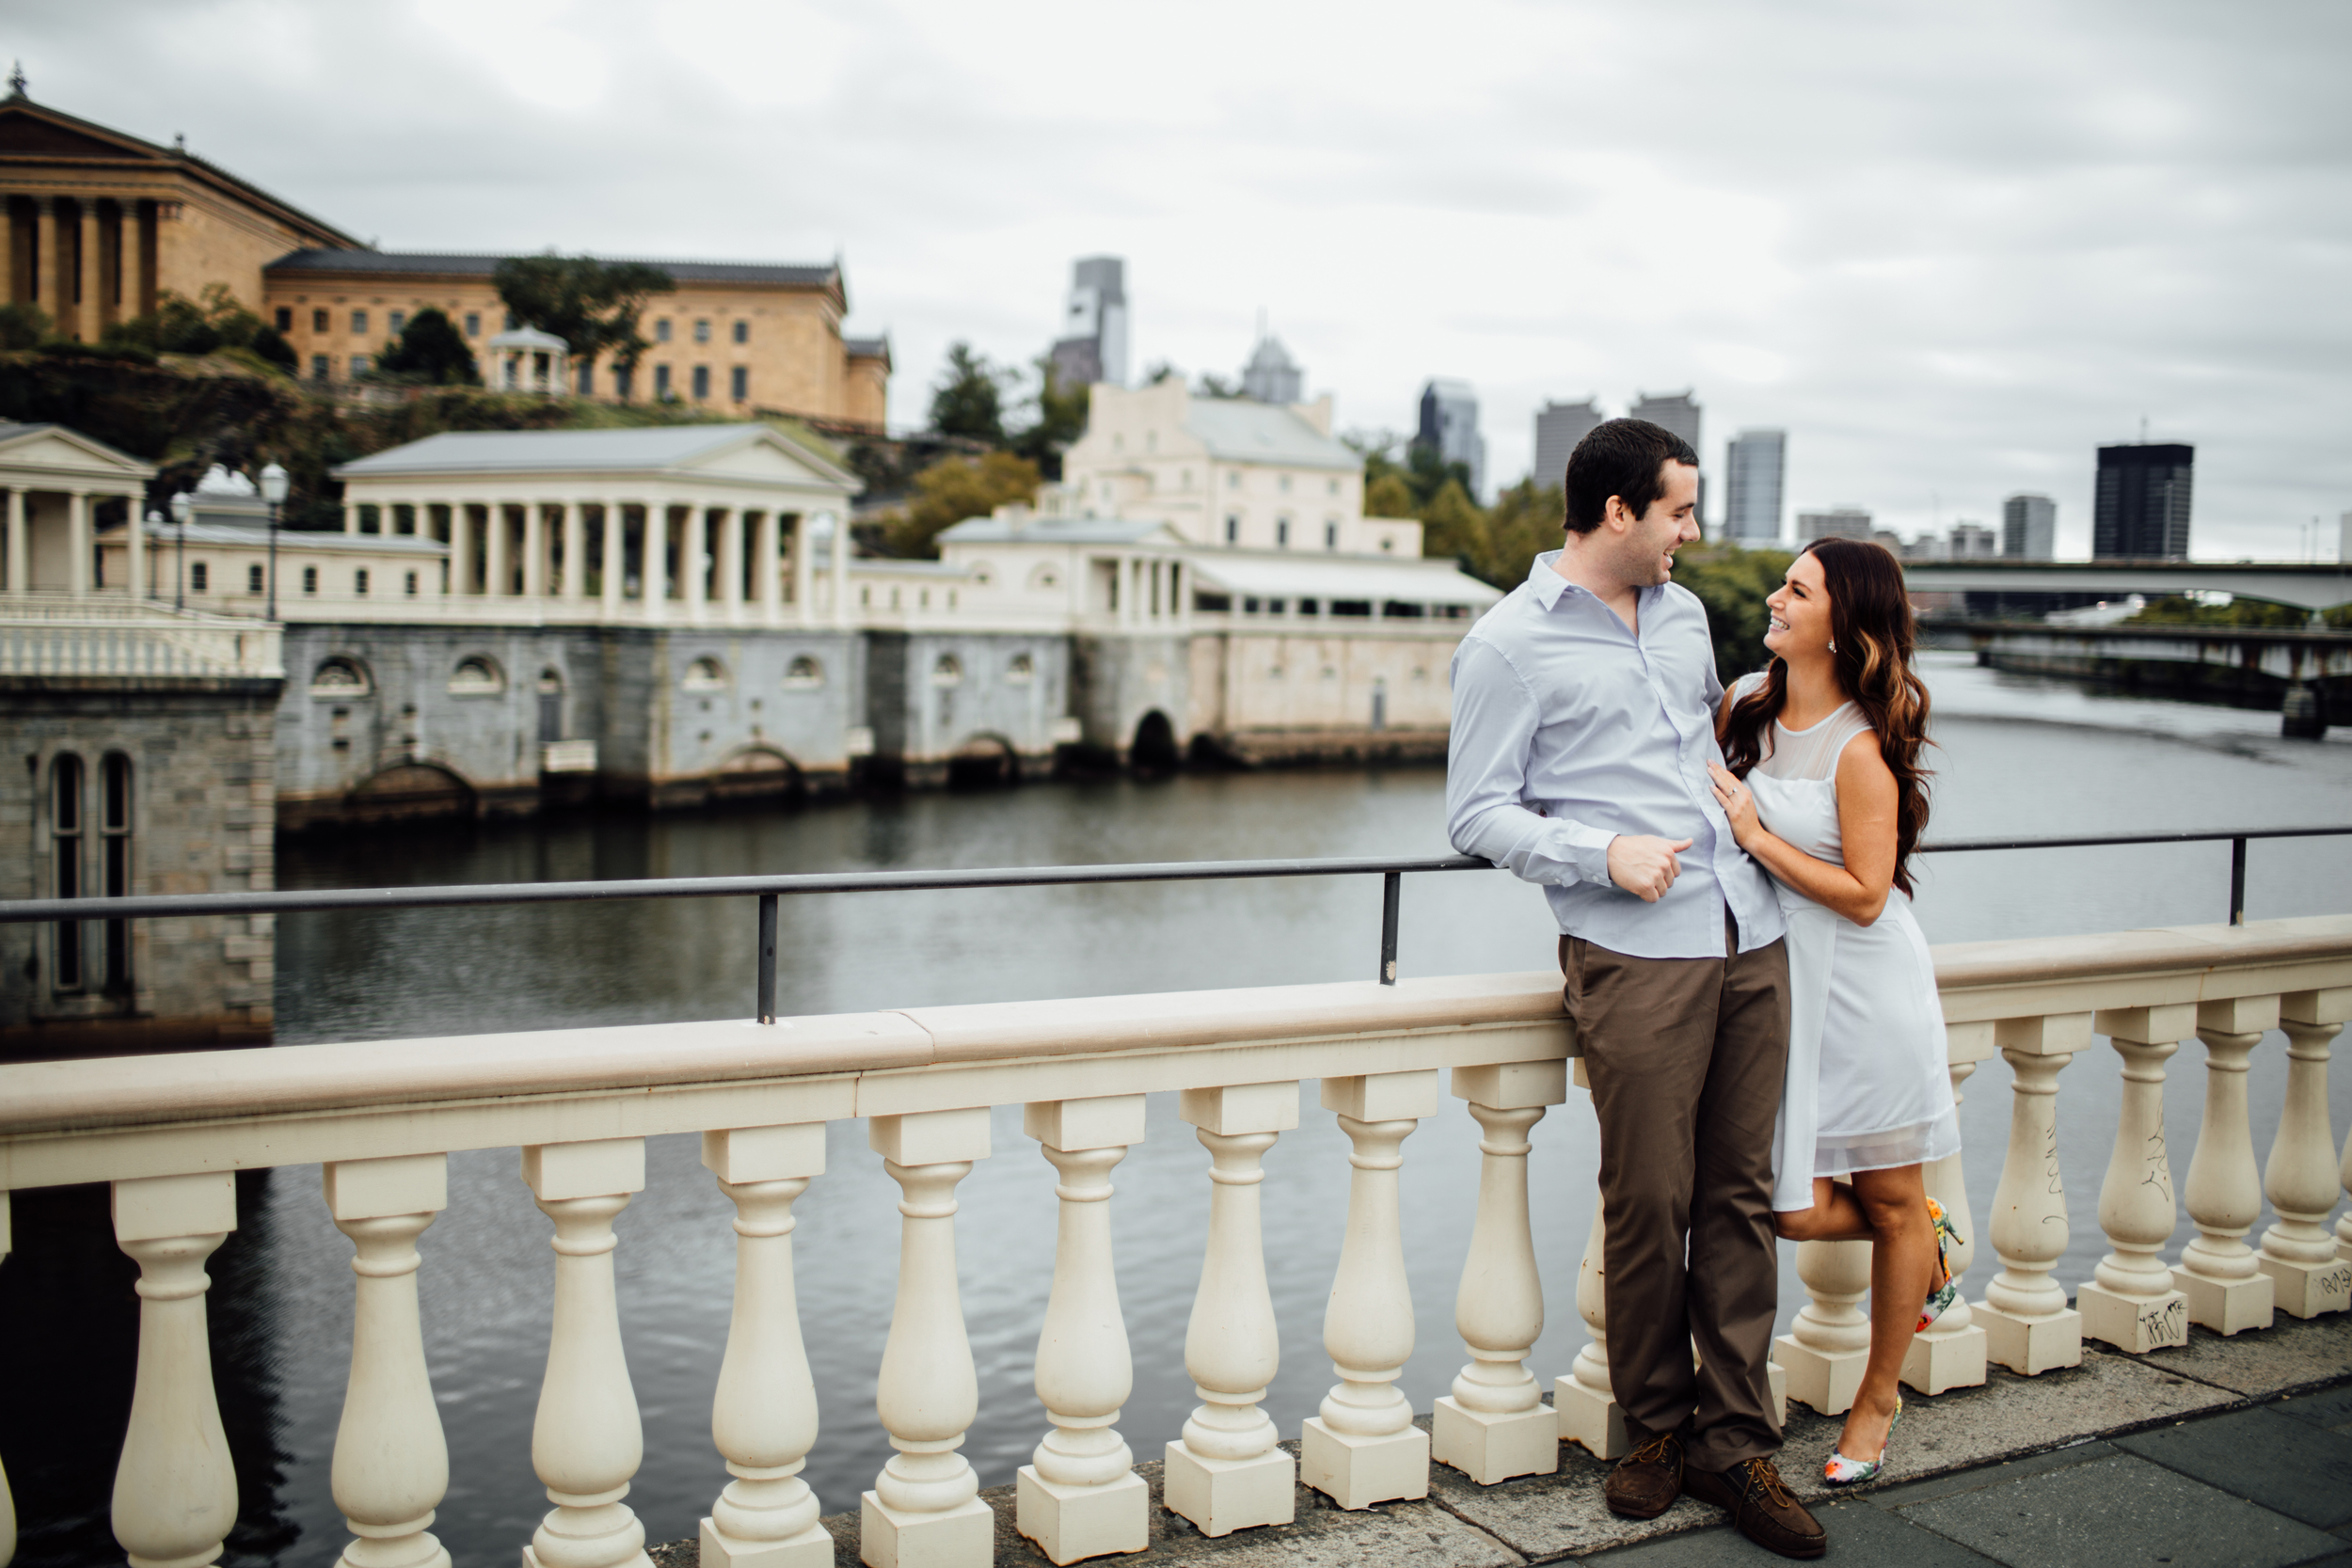 BRITTANYandKEVIN-Engagement2015 (18 of 115).jpg